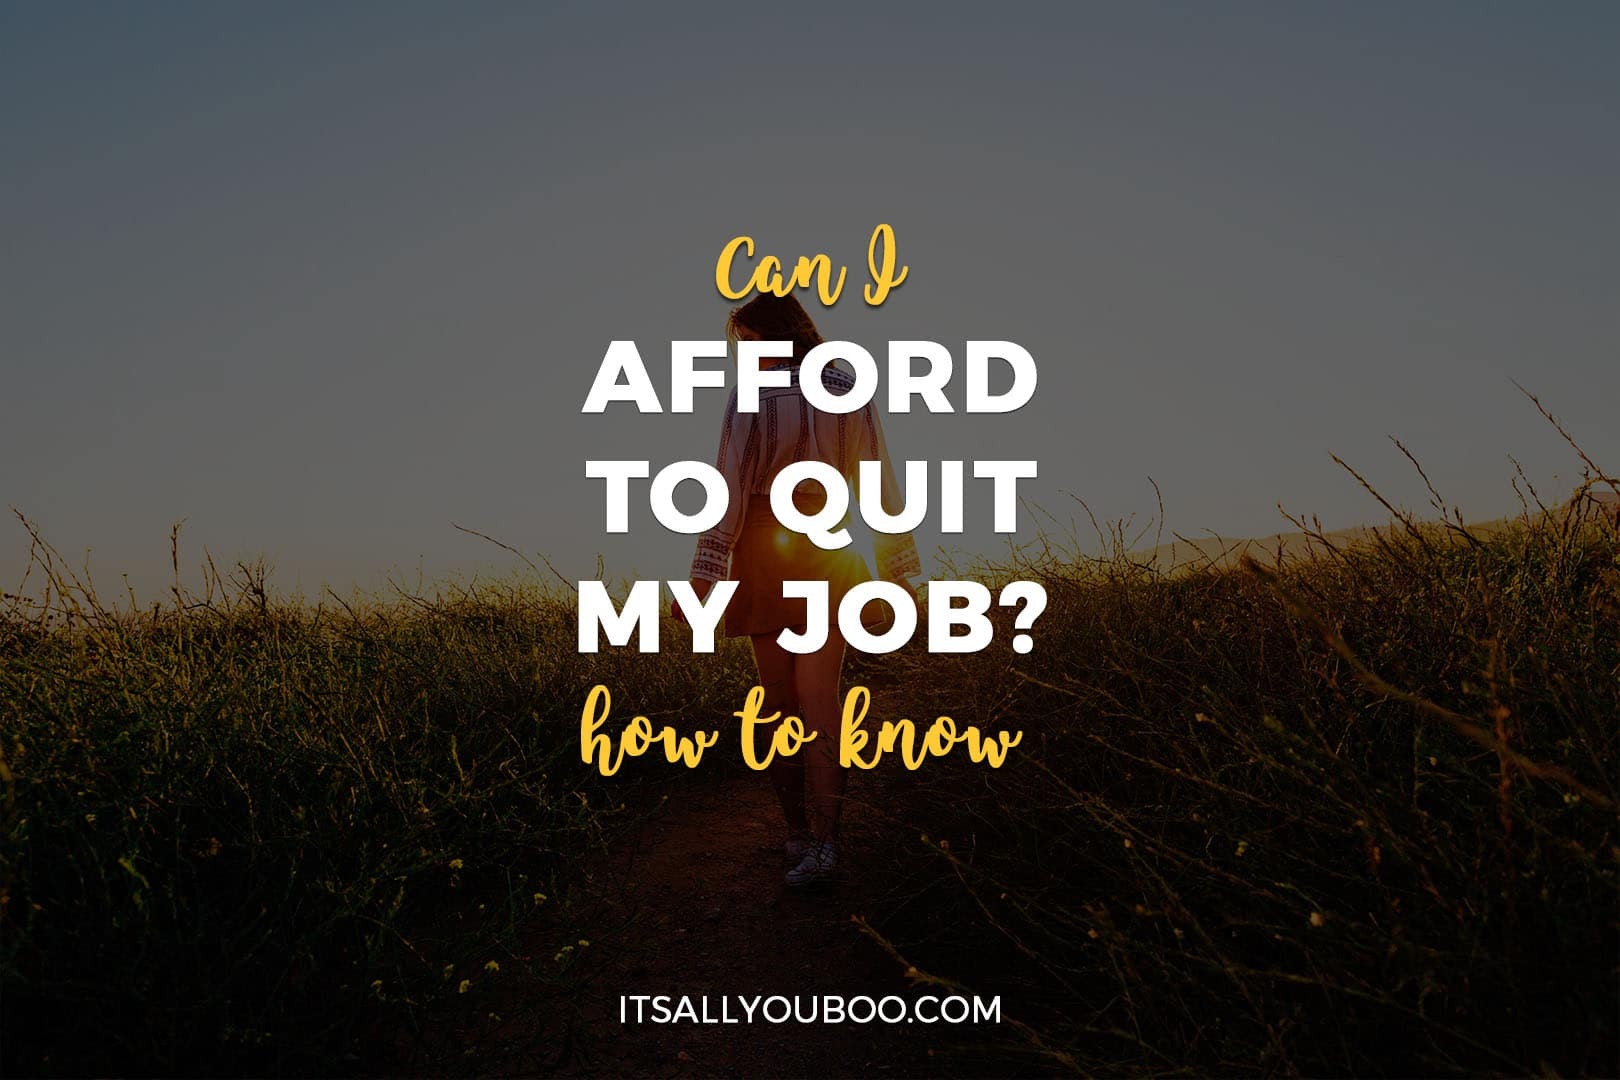 Can I Afford to Quit My Job? How to know.